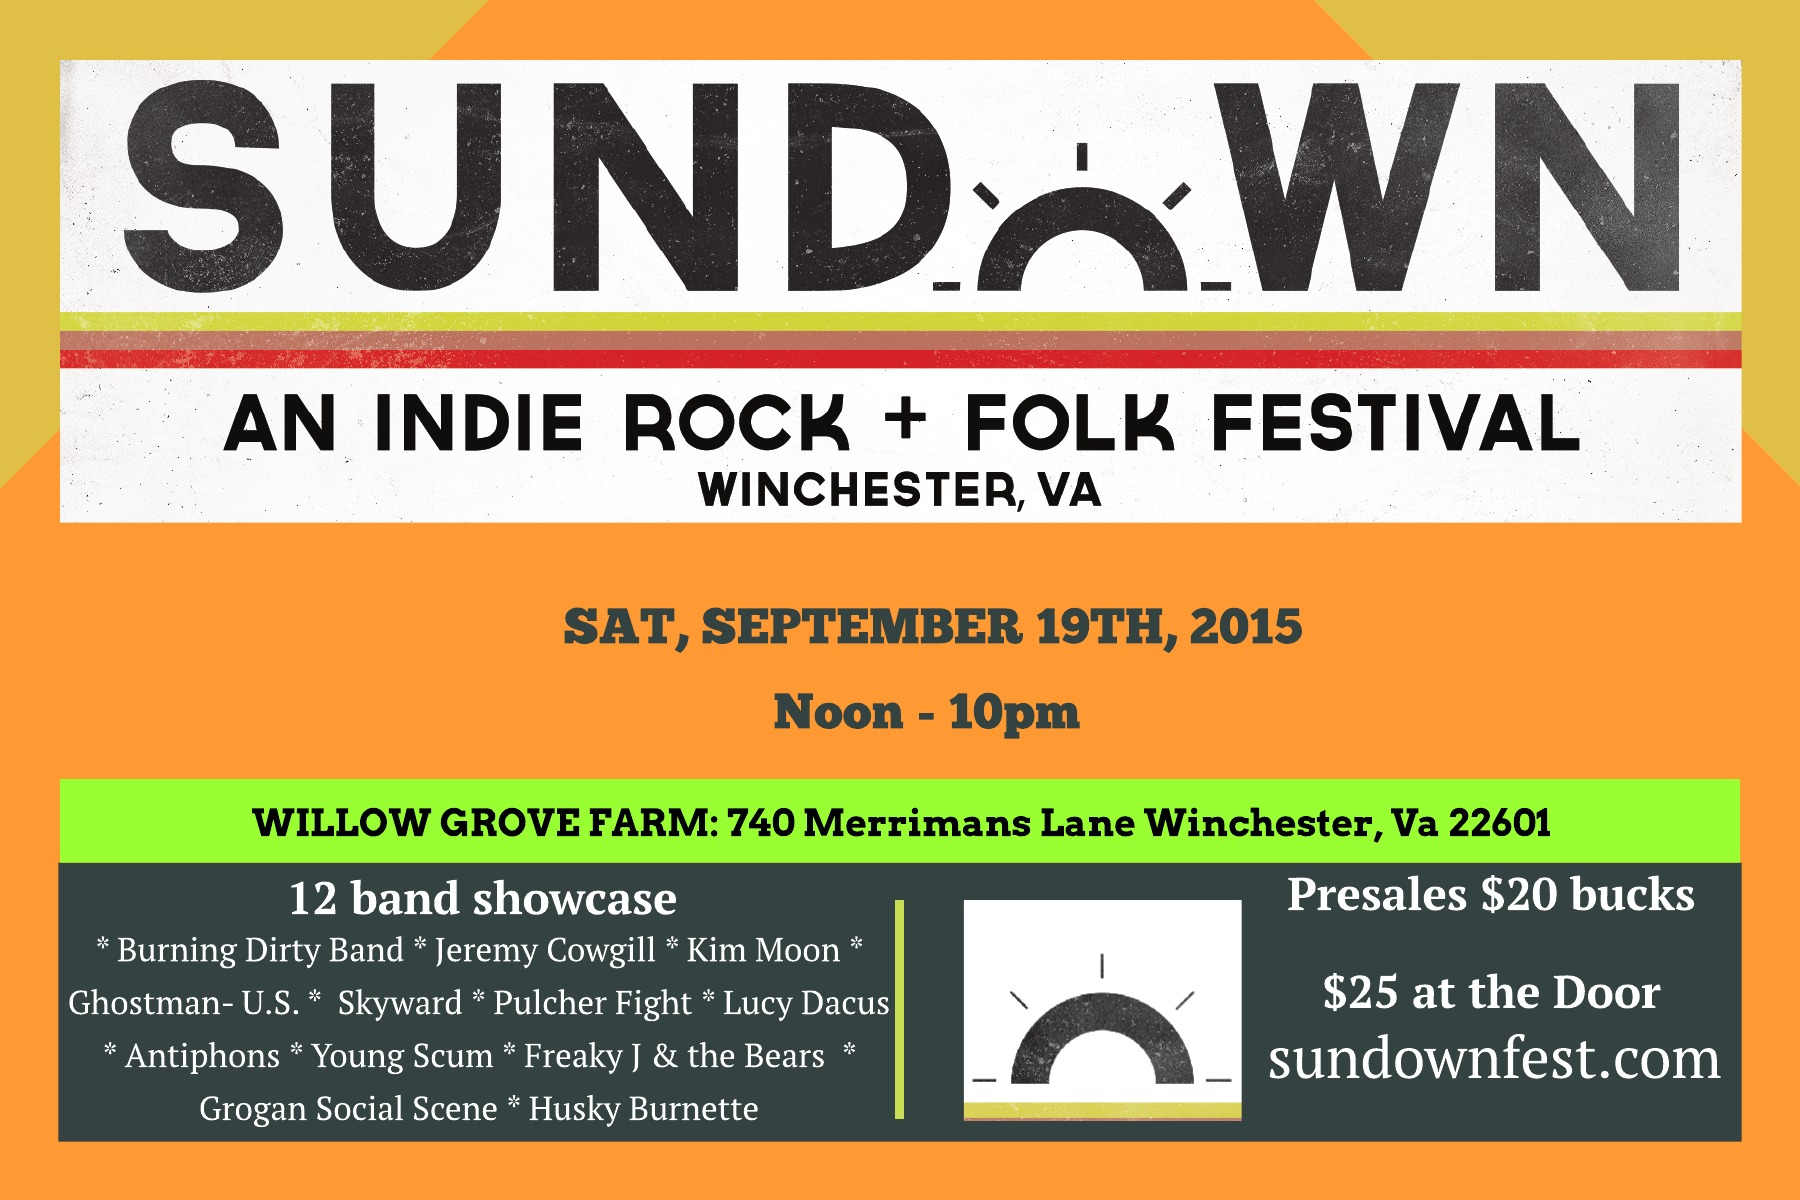 Sundown indie rock and folk festival 2015 winchester virginia usa september 19th